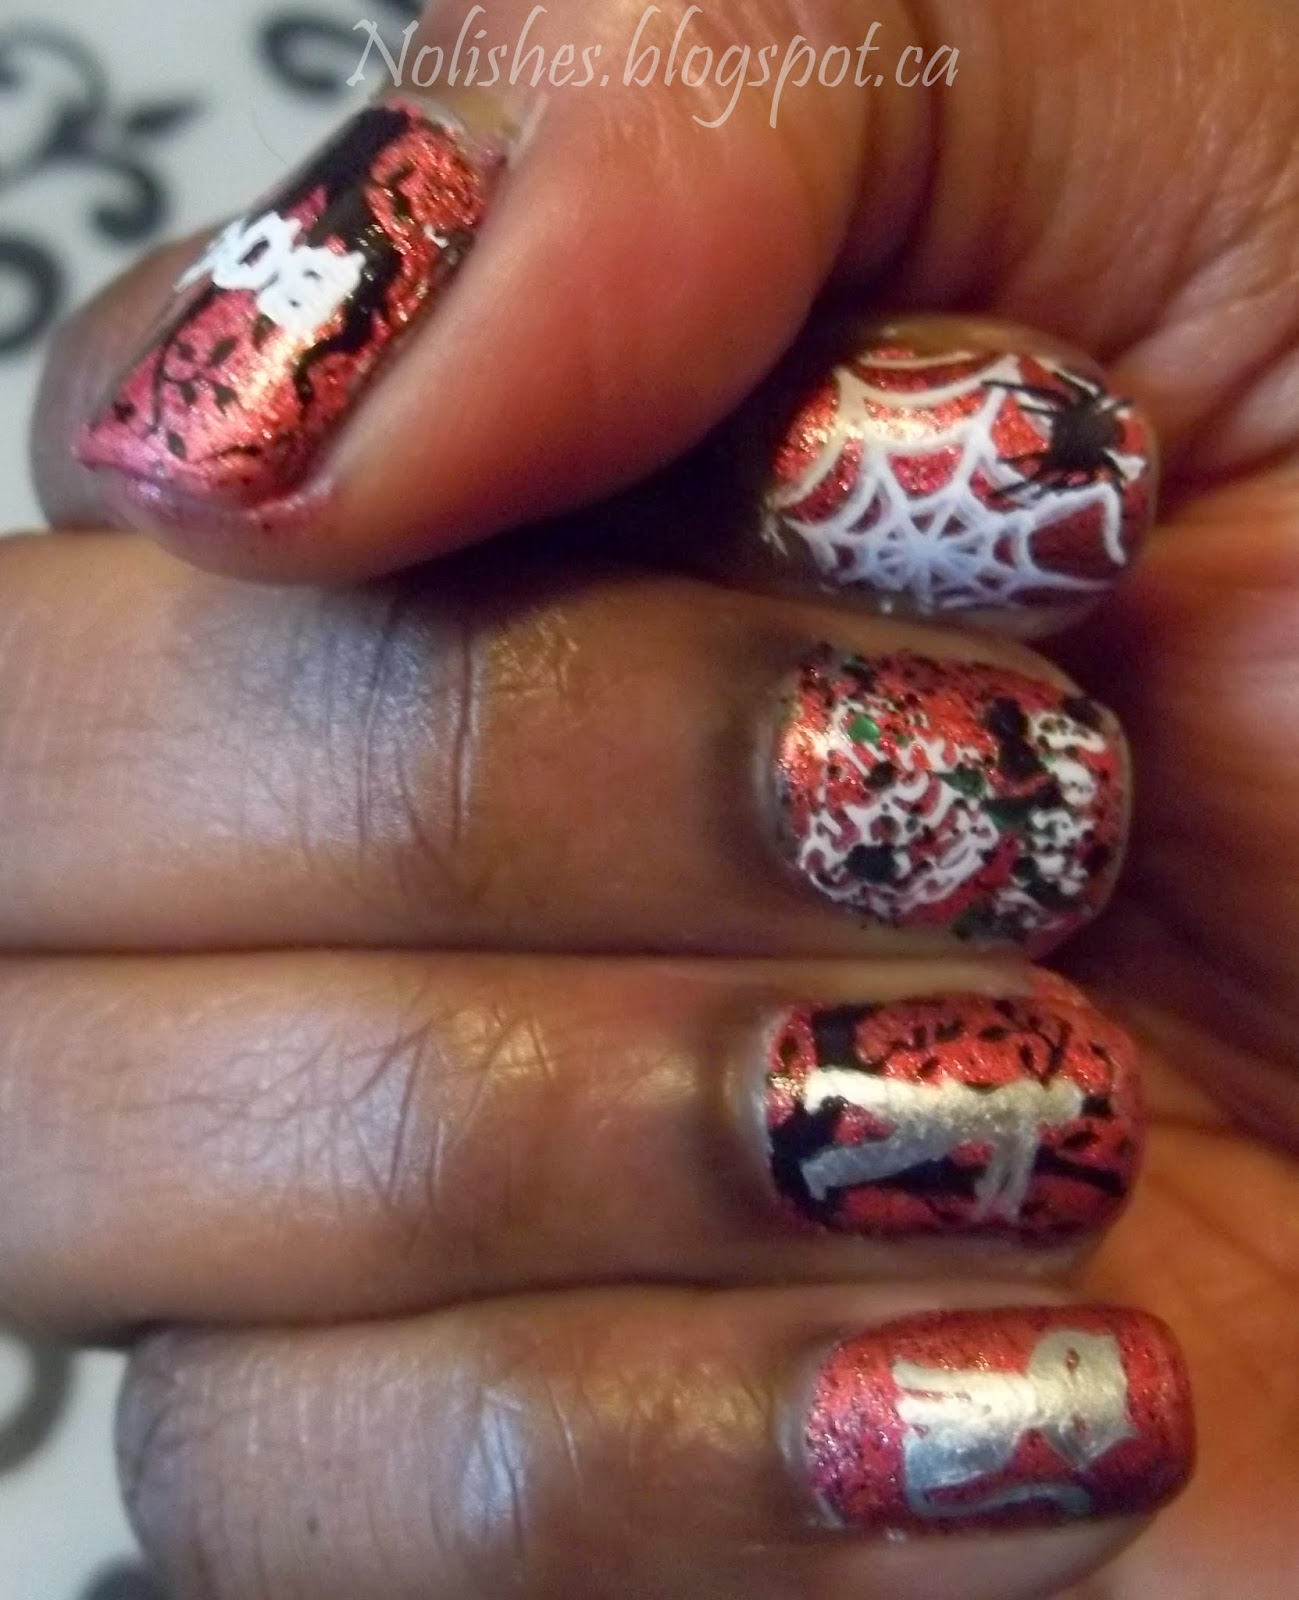 Halloween Themed Nail Stamping Test Mani, using Bunny Nails Stamping Plates BuNa-A, and HD-C. Polishes Used: China Glaze 'I Love Your Guts', Sally Hansen 'Silver Sweep', Sinful Colors 'Cauldron Couture', and Konad special polish in 'black' and 'white'.